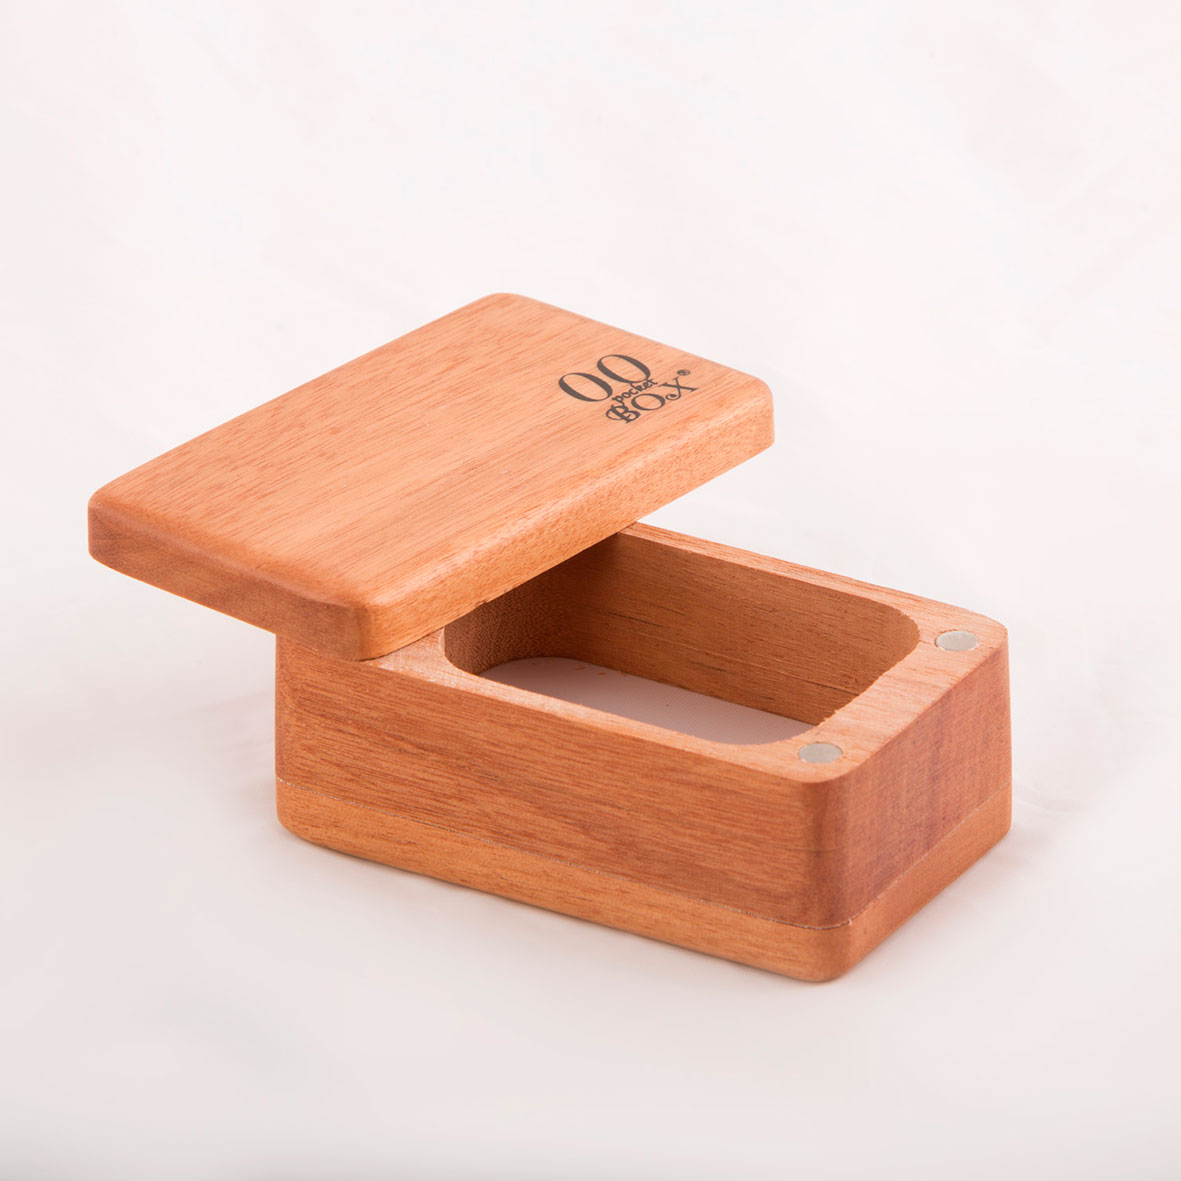 Pocket box 01